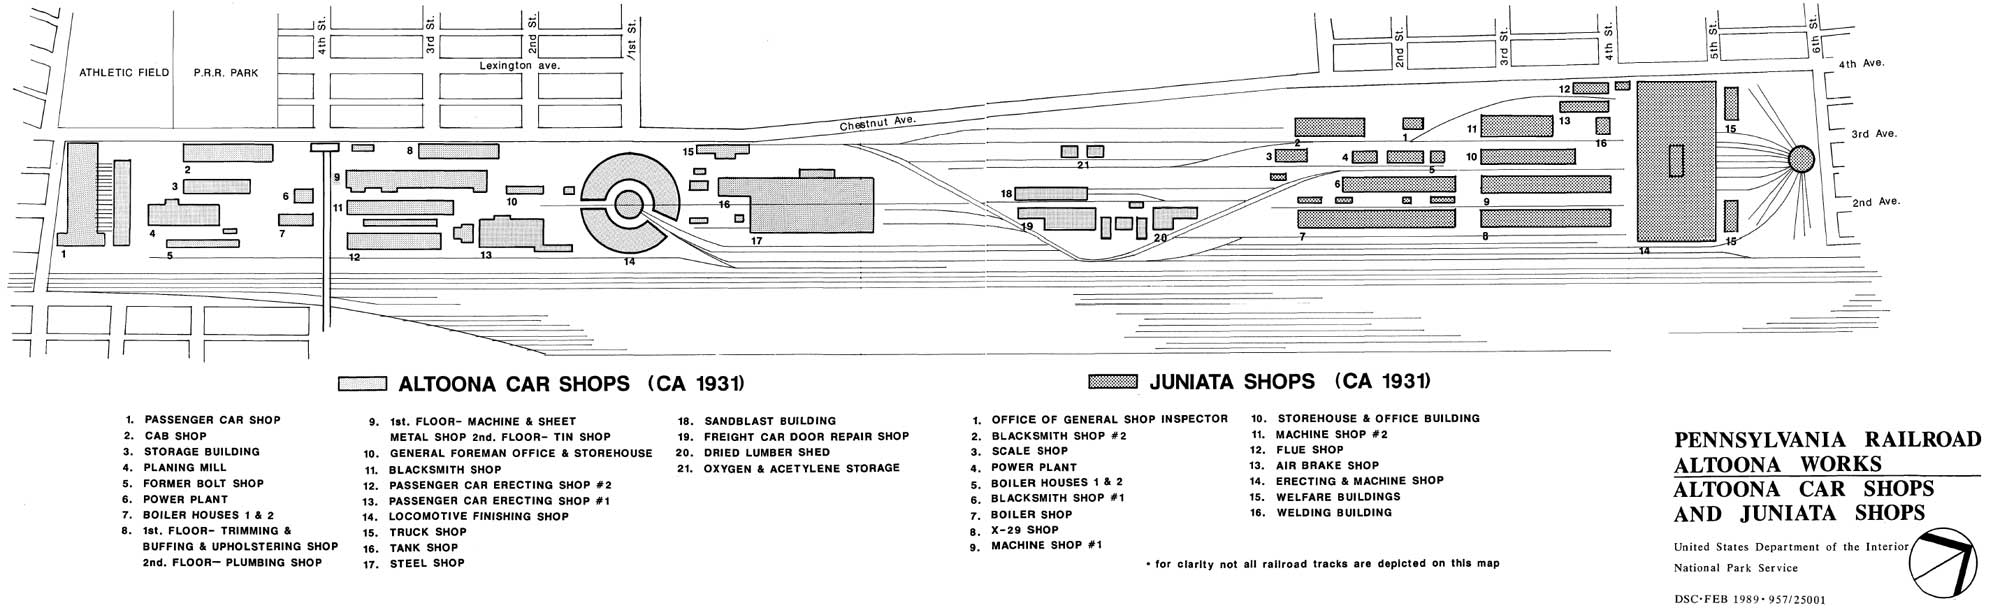 Car Door Diagram Here We Have A Much More Update View Of The Altoona Shop Now Union Tank Co And Juniata